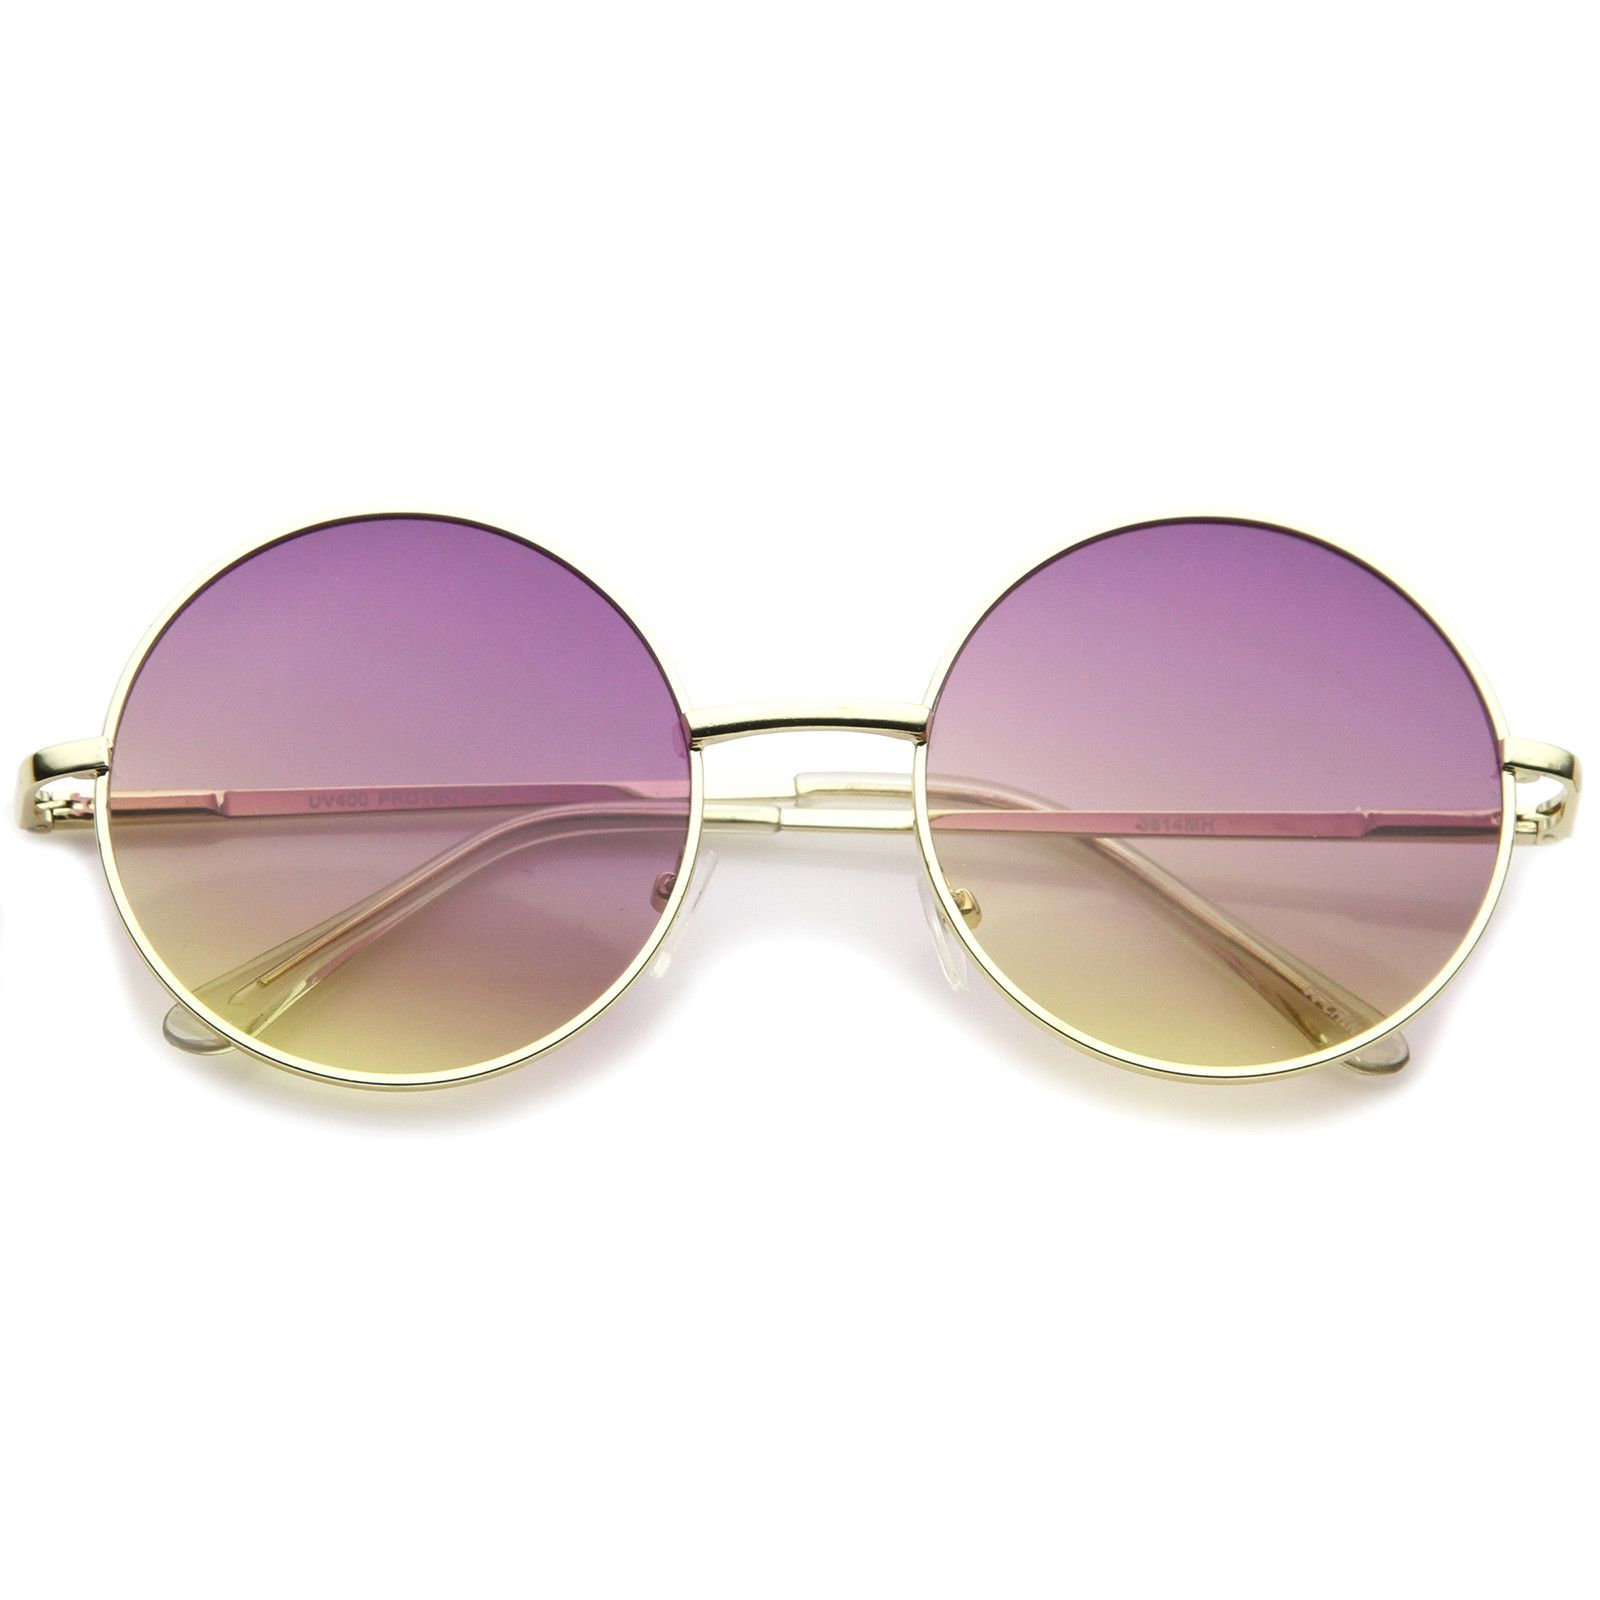 00791be22cf3 Womens Metal Round Sunglasses With UV400 Protected Gradient Lens ...